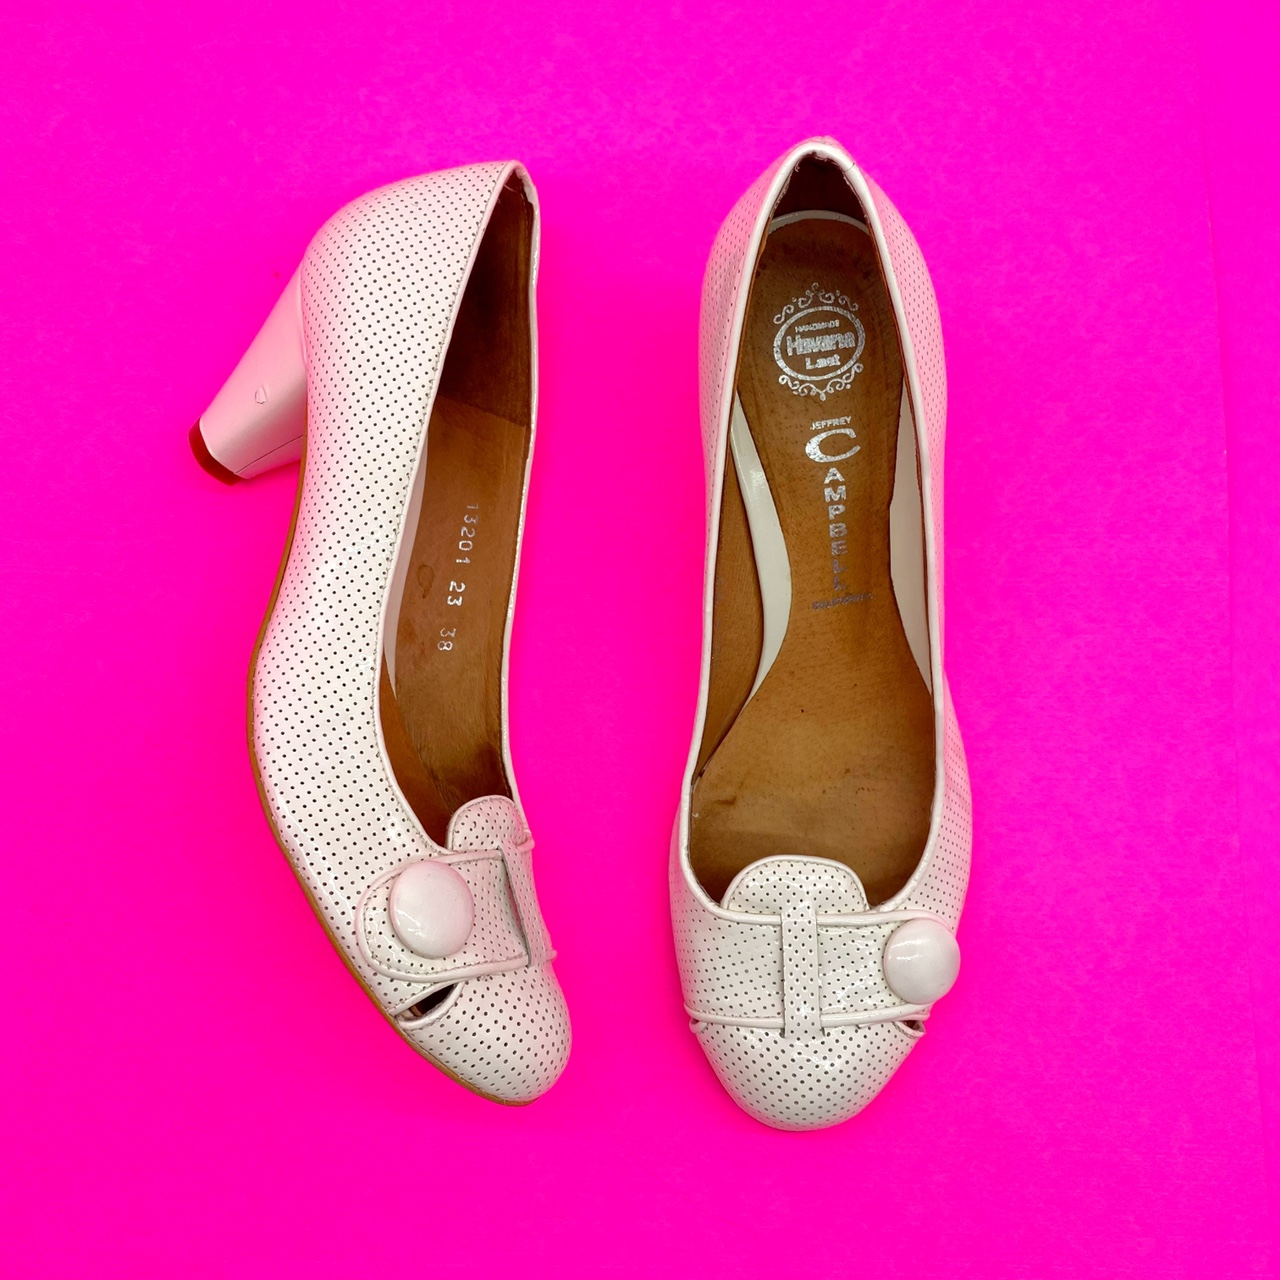 Product Image 1 - White perforated 80s style heels